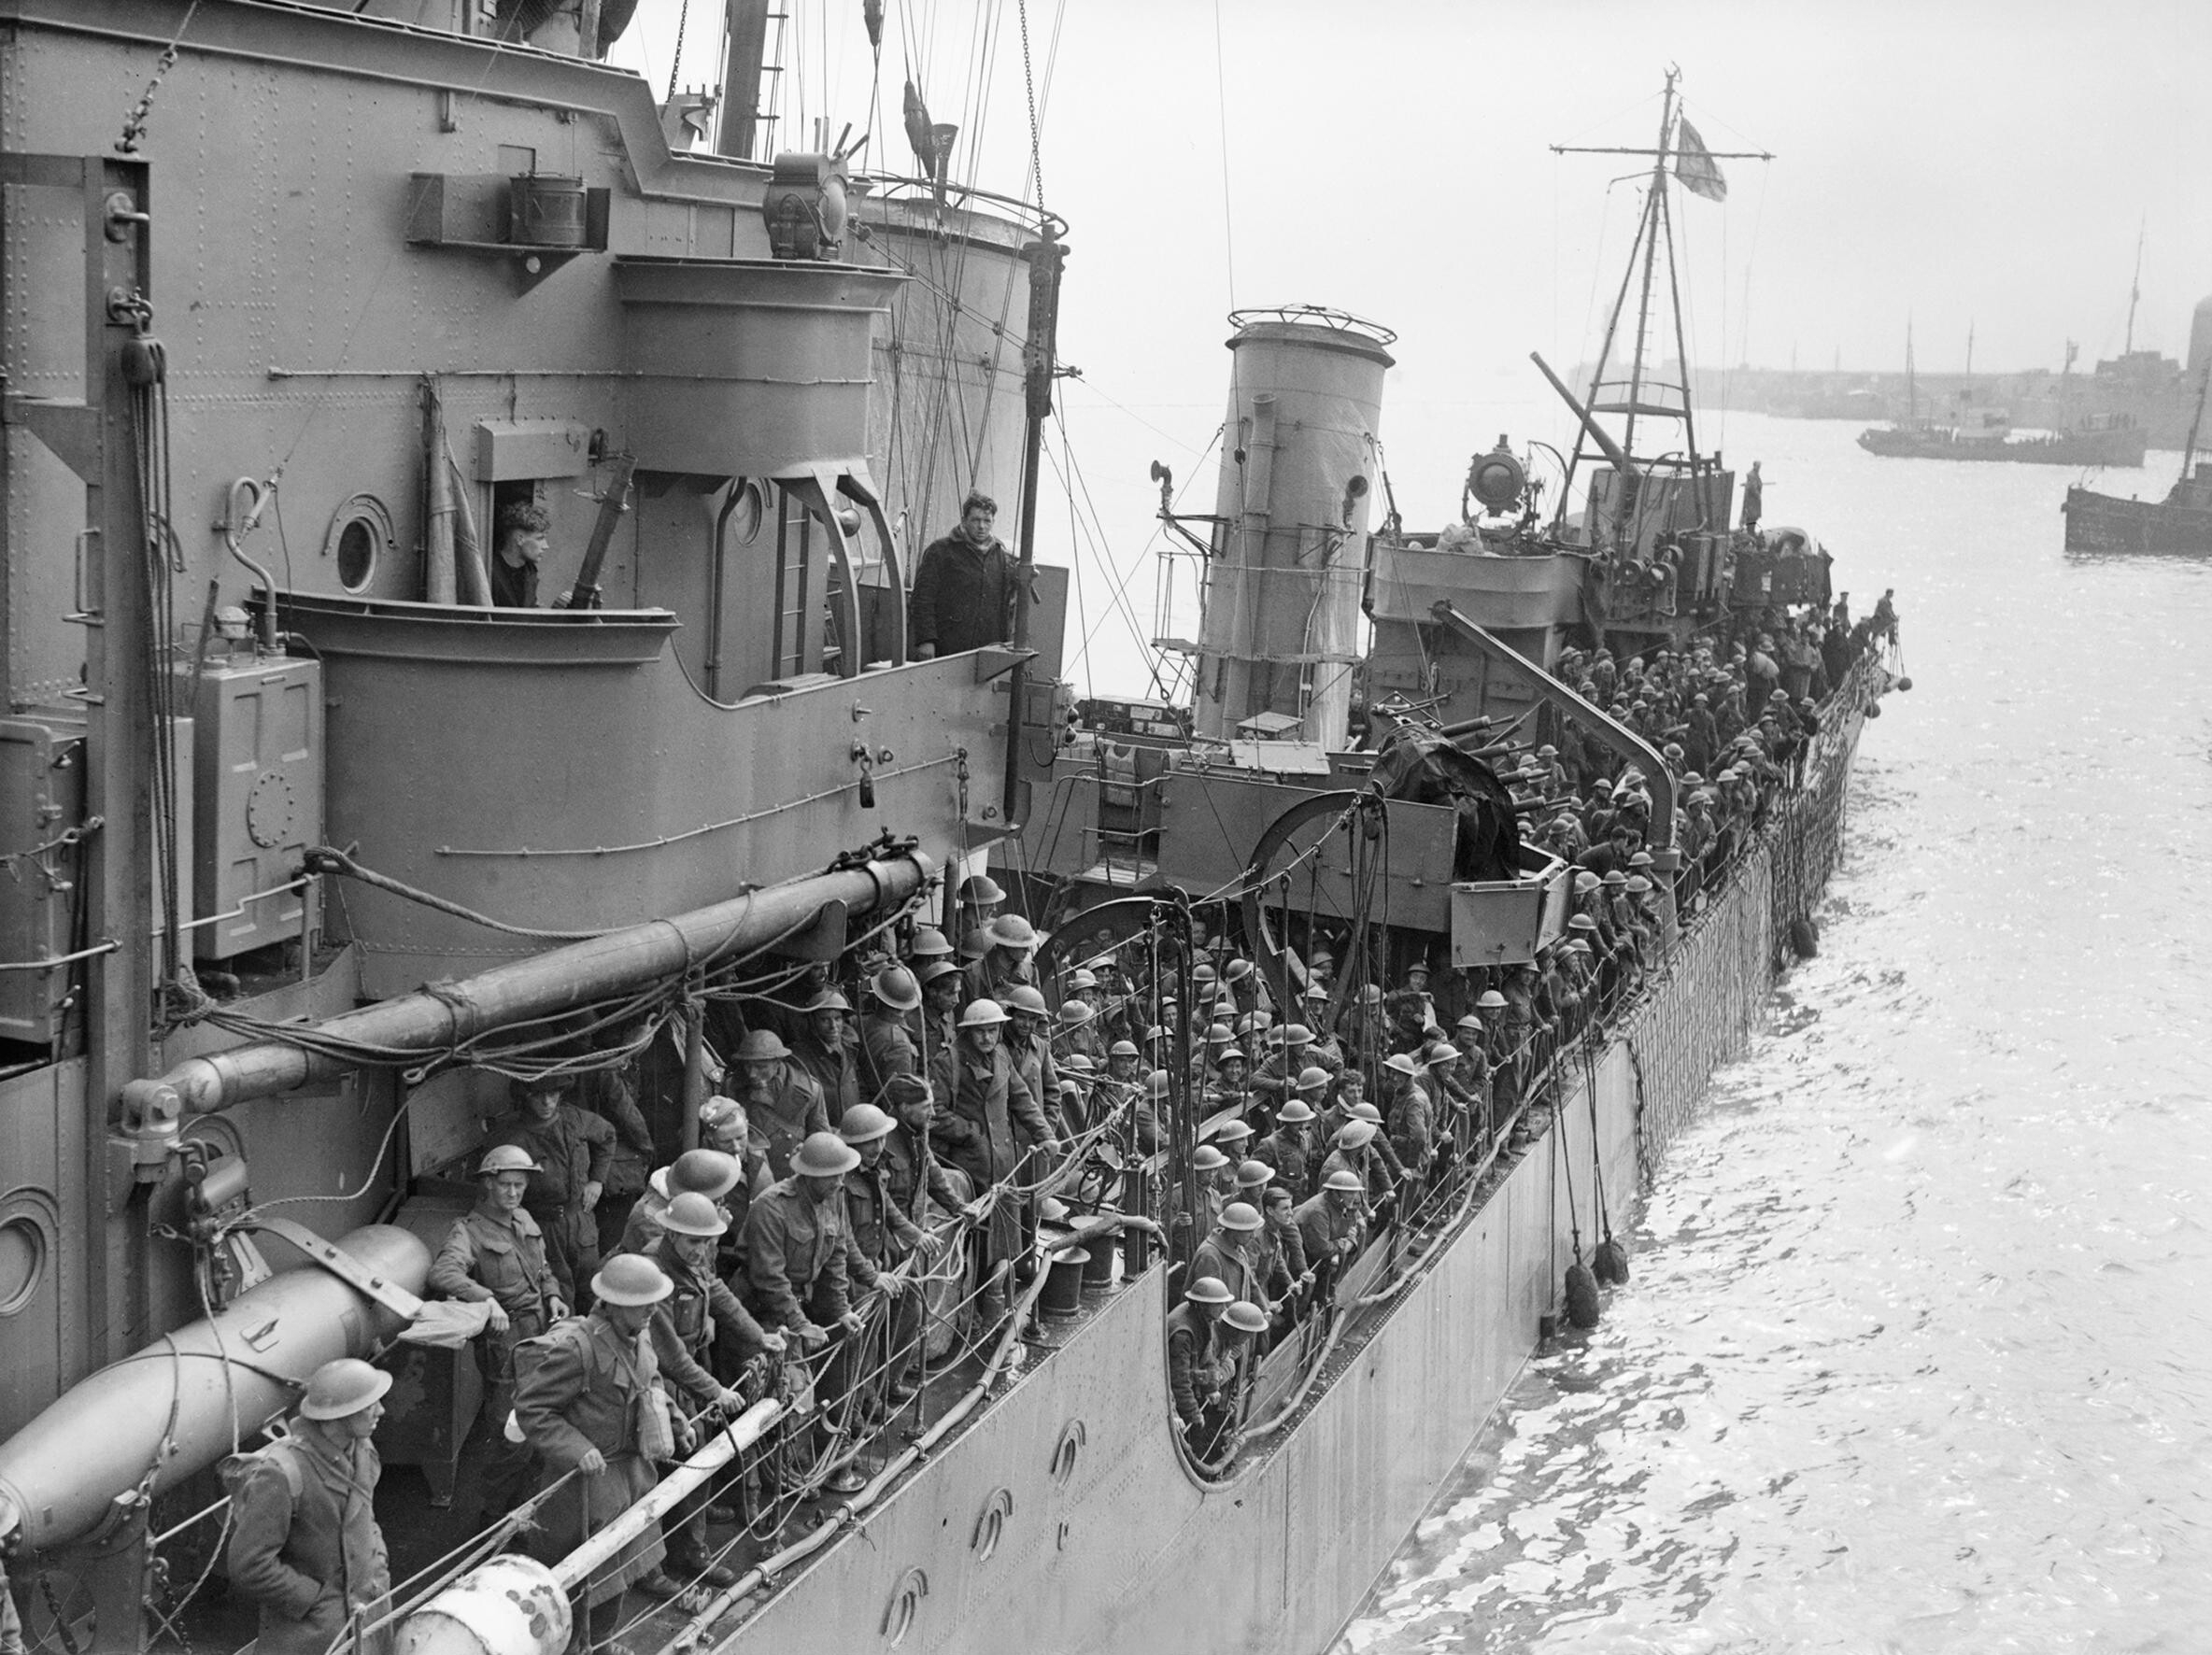 Troops evacuated from Dunkirk on a destroyer about to berth at Dover, 31 May 1940. H1637